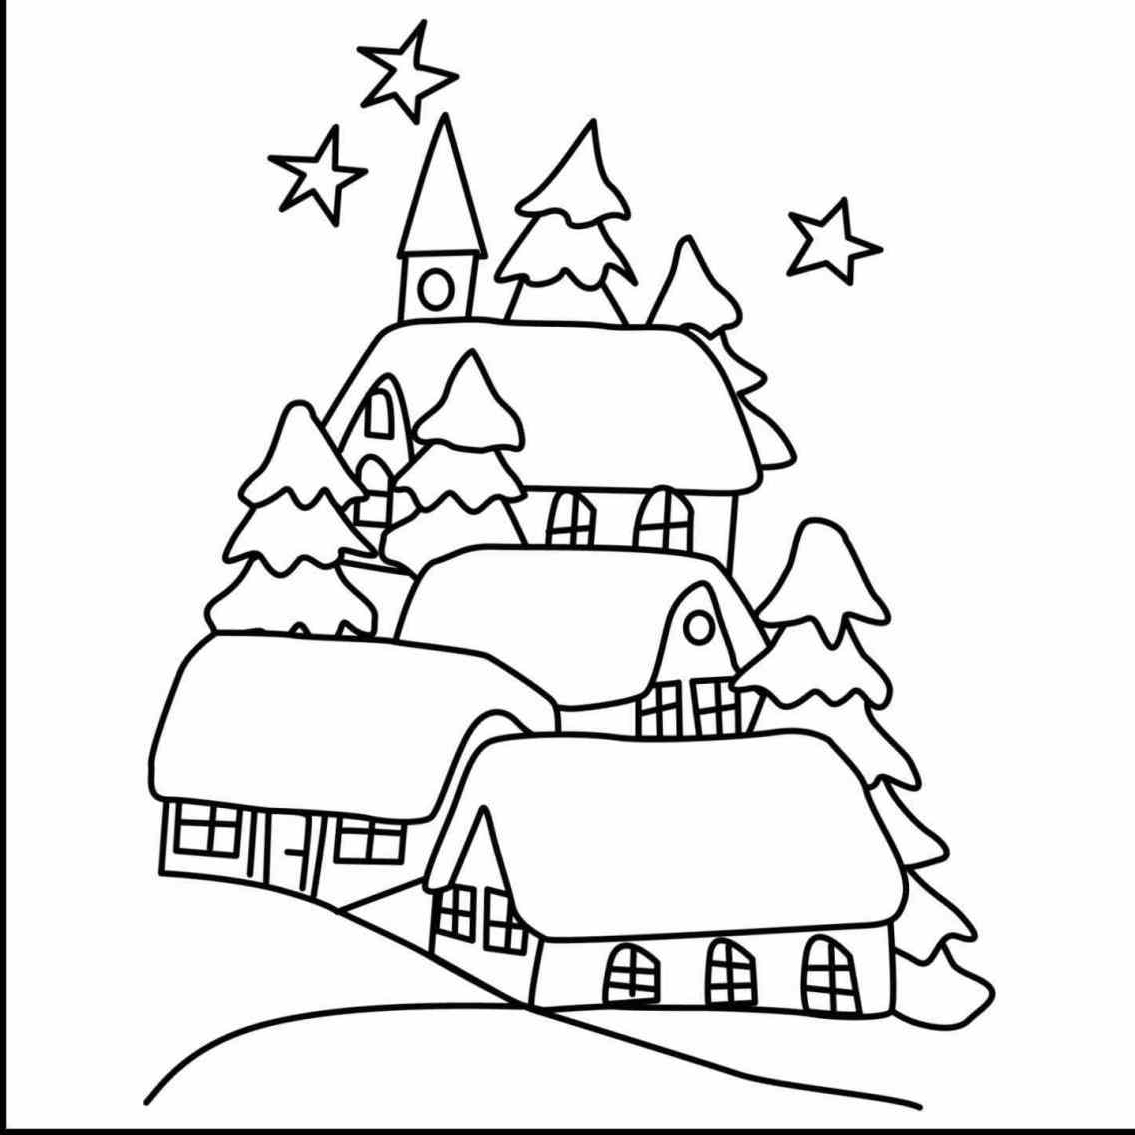 coloring scenery for kids beautiful scenery colouring pages in the playroom kids coloring for scenery